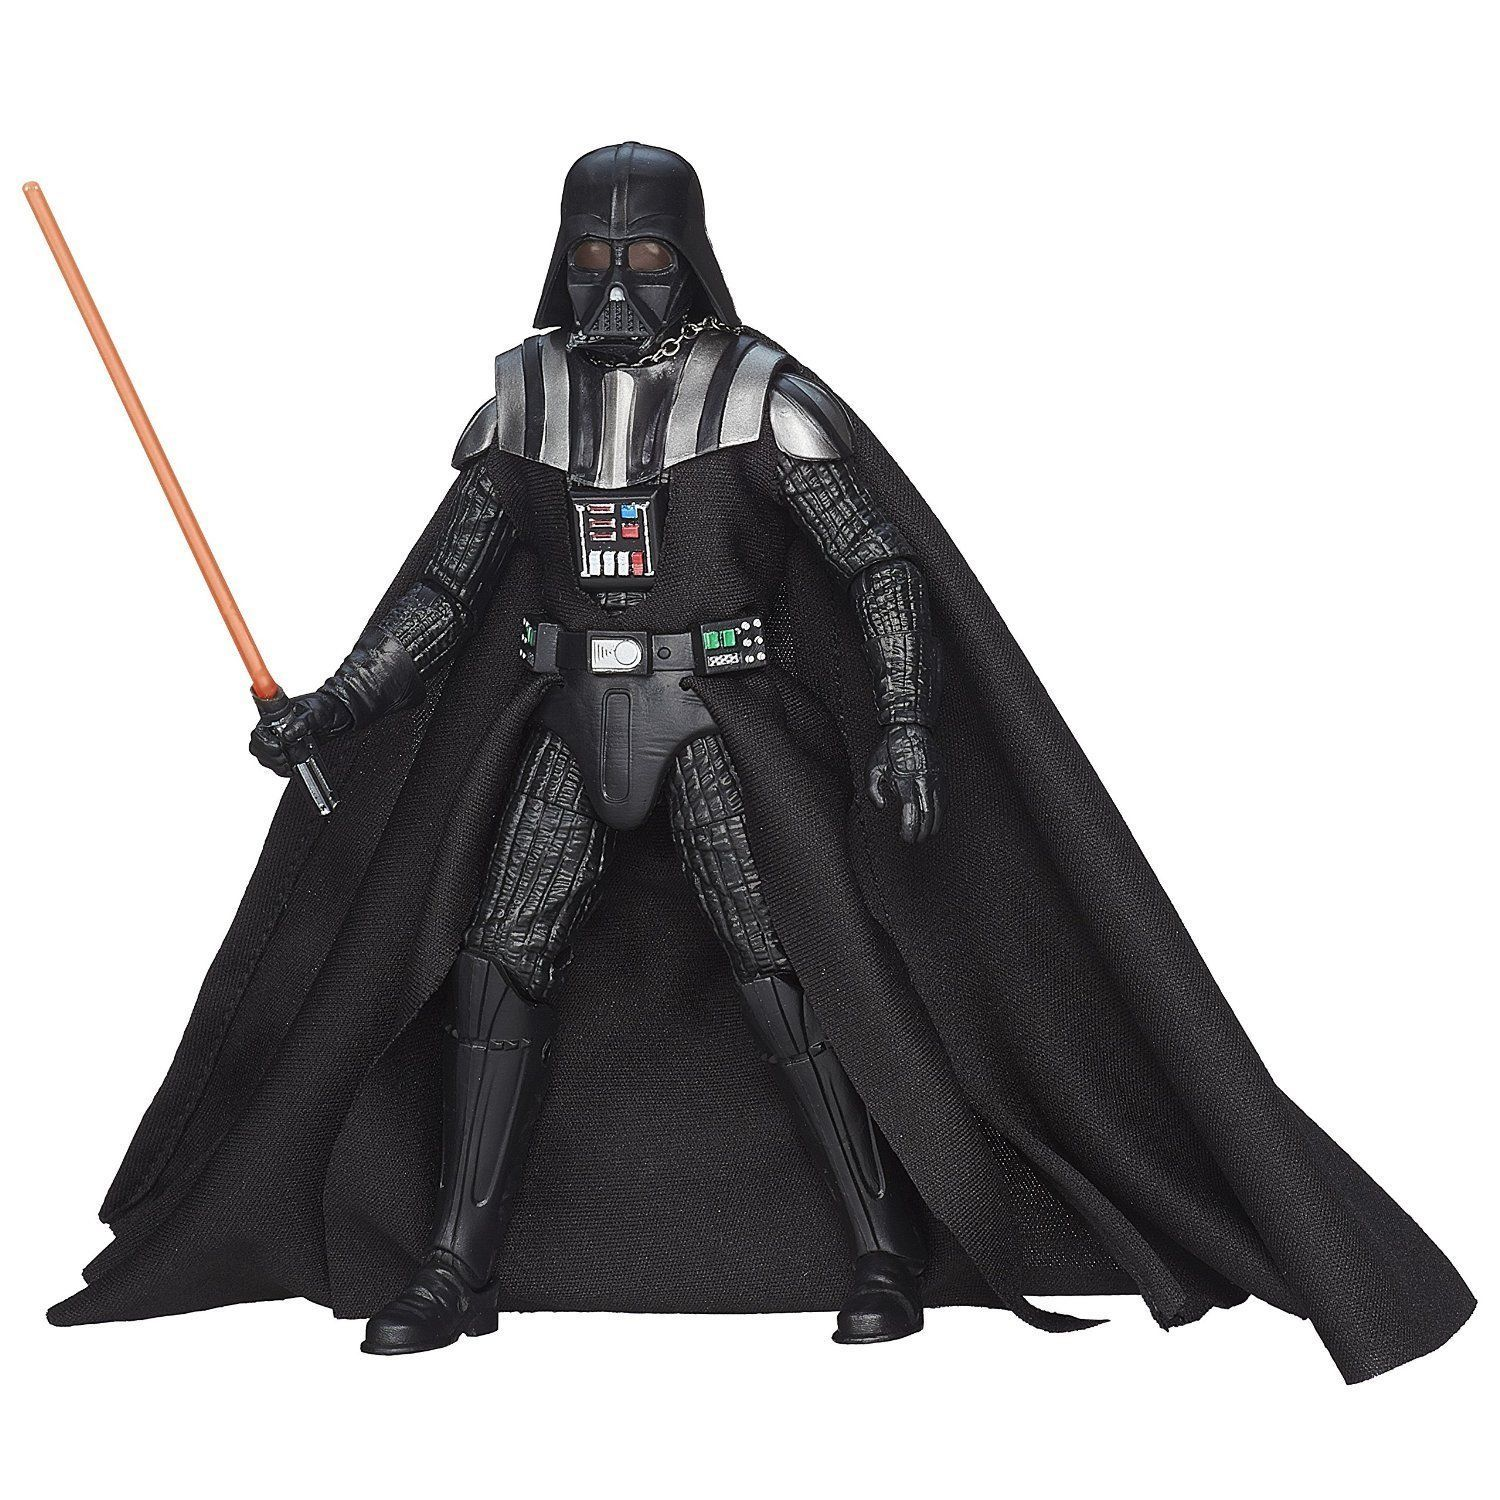 Star Wars The Black Series 6-Inch Action Figure Darth Vader w/ Light Saber